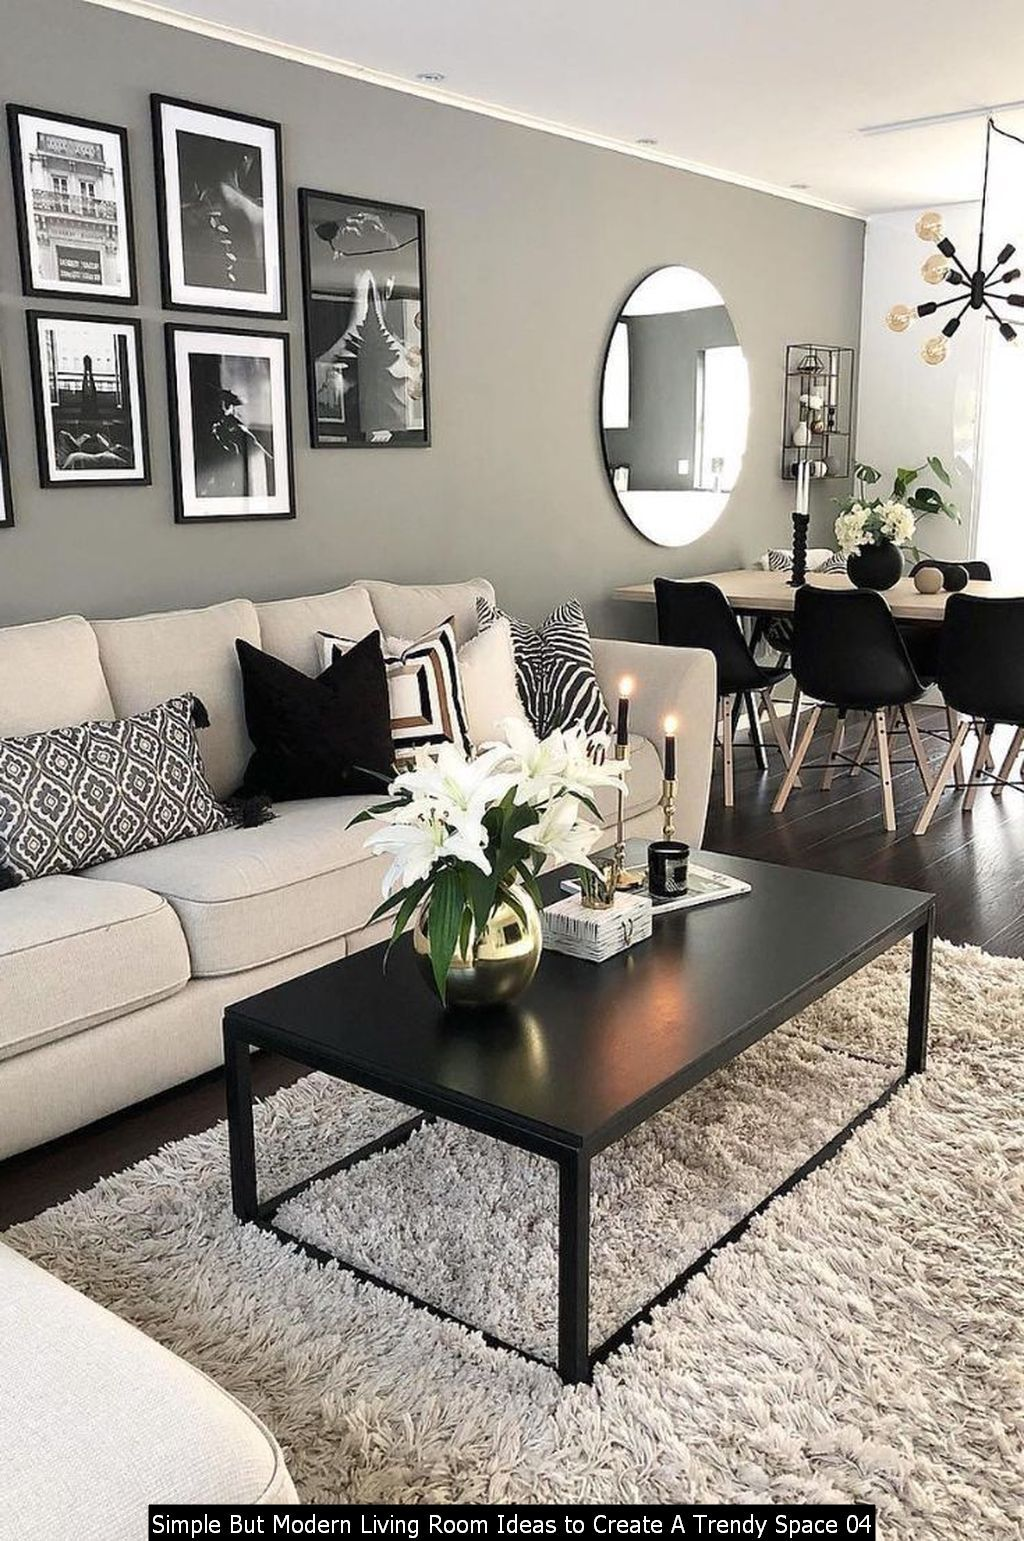 30 Simple But Modern Living Room Ideas To Create A Trendy Space In 2021 Black Living Room Decor Decor Home Living Room Small Living Room Decor